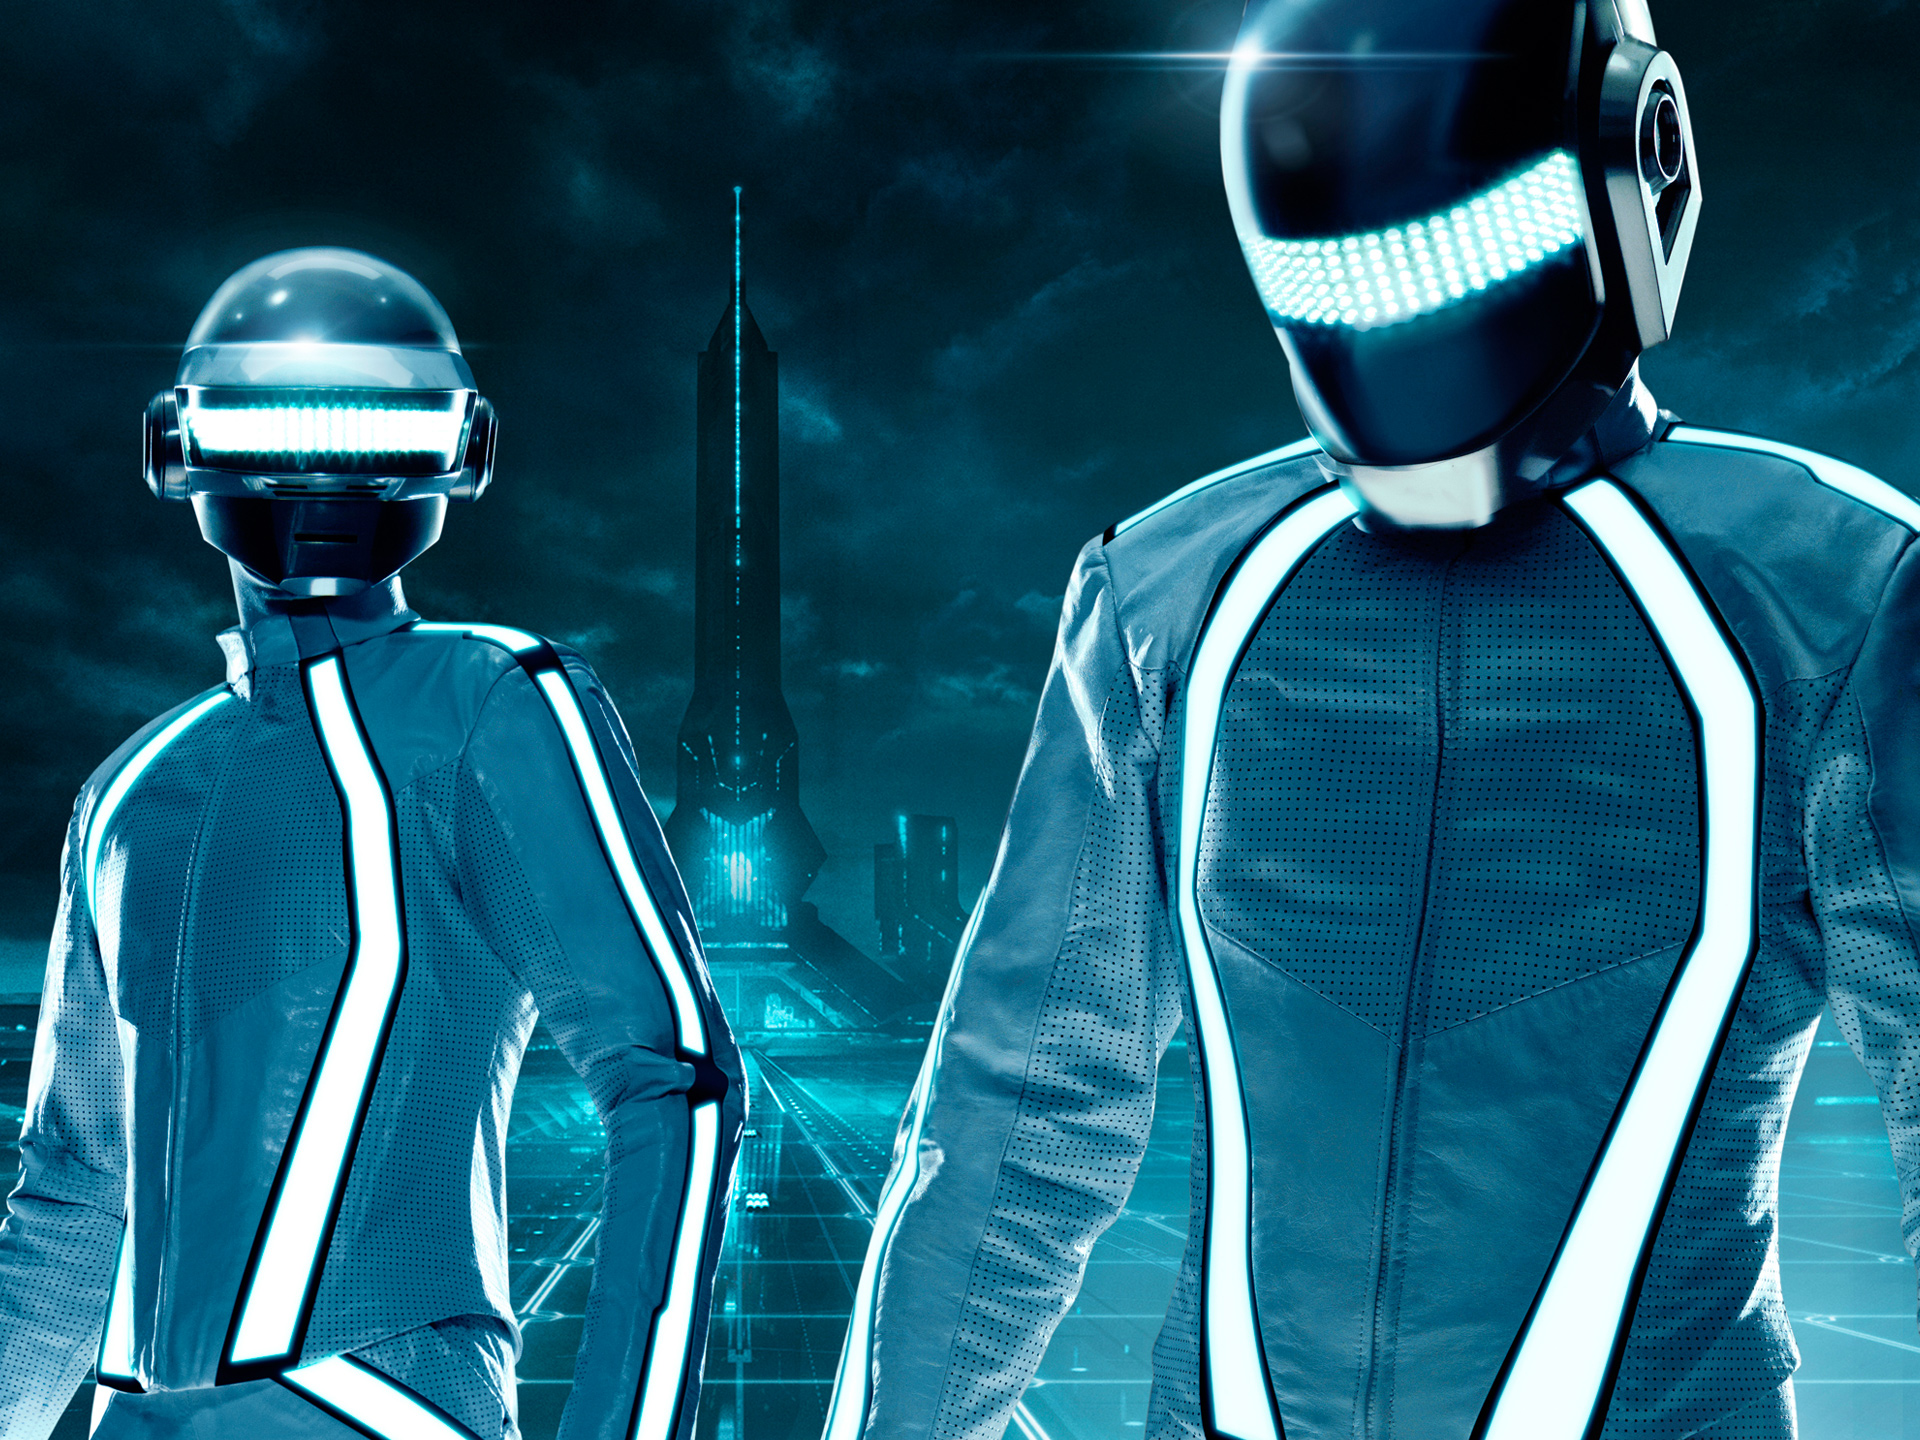 click to free download the wallpaper--Free Download TV & Movies Post - Daft Punk Duo Tron Legacy Post in Pixel of 1920x1440, Two Men Activated, Helpful to Each Other 1920X1440 free wallpaper download